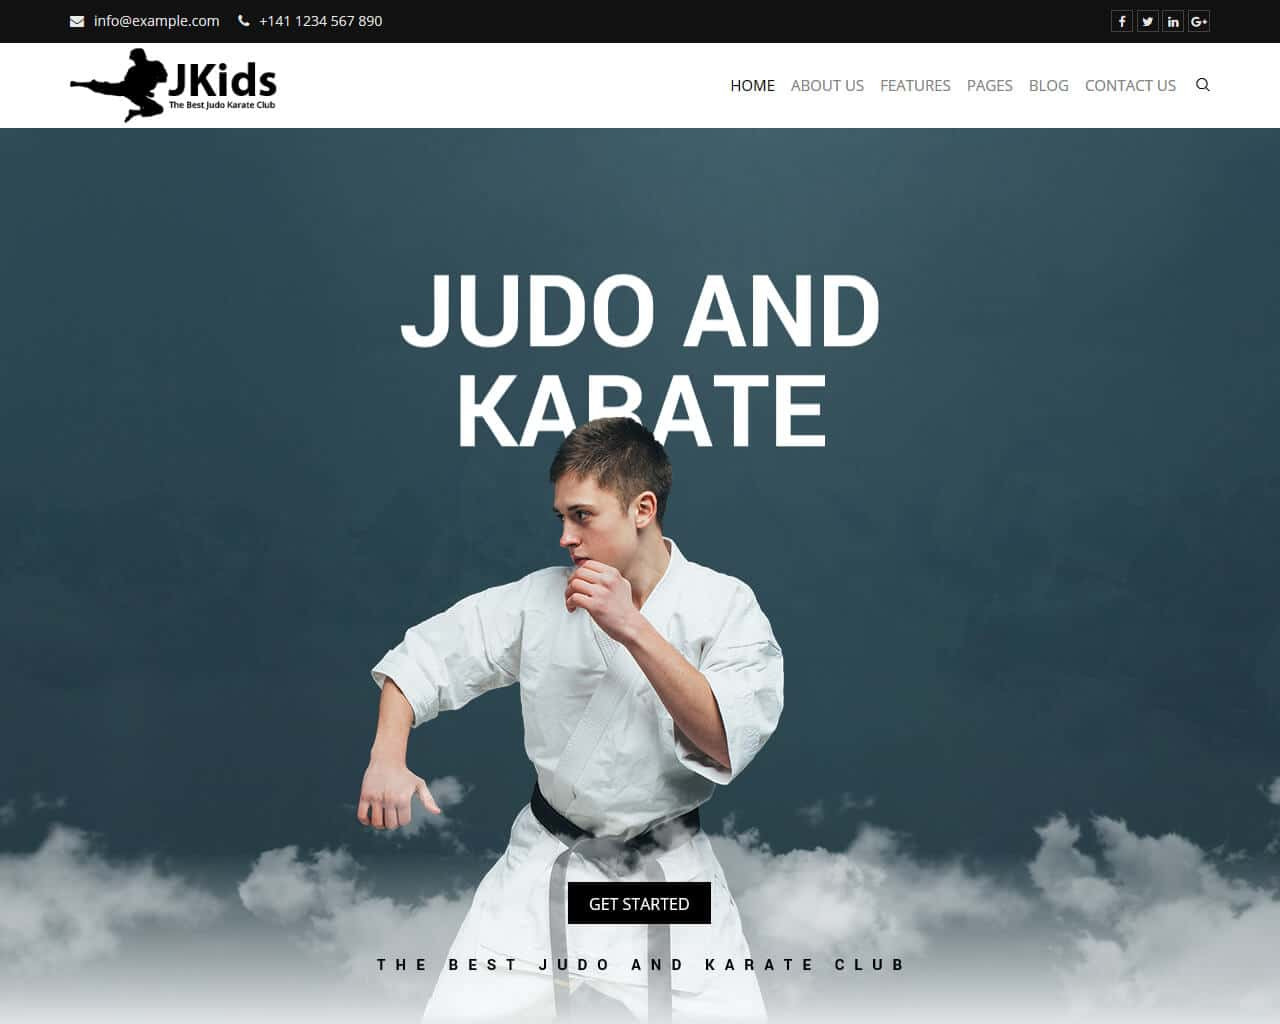 JKids Website Template